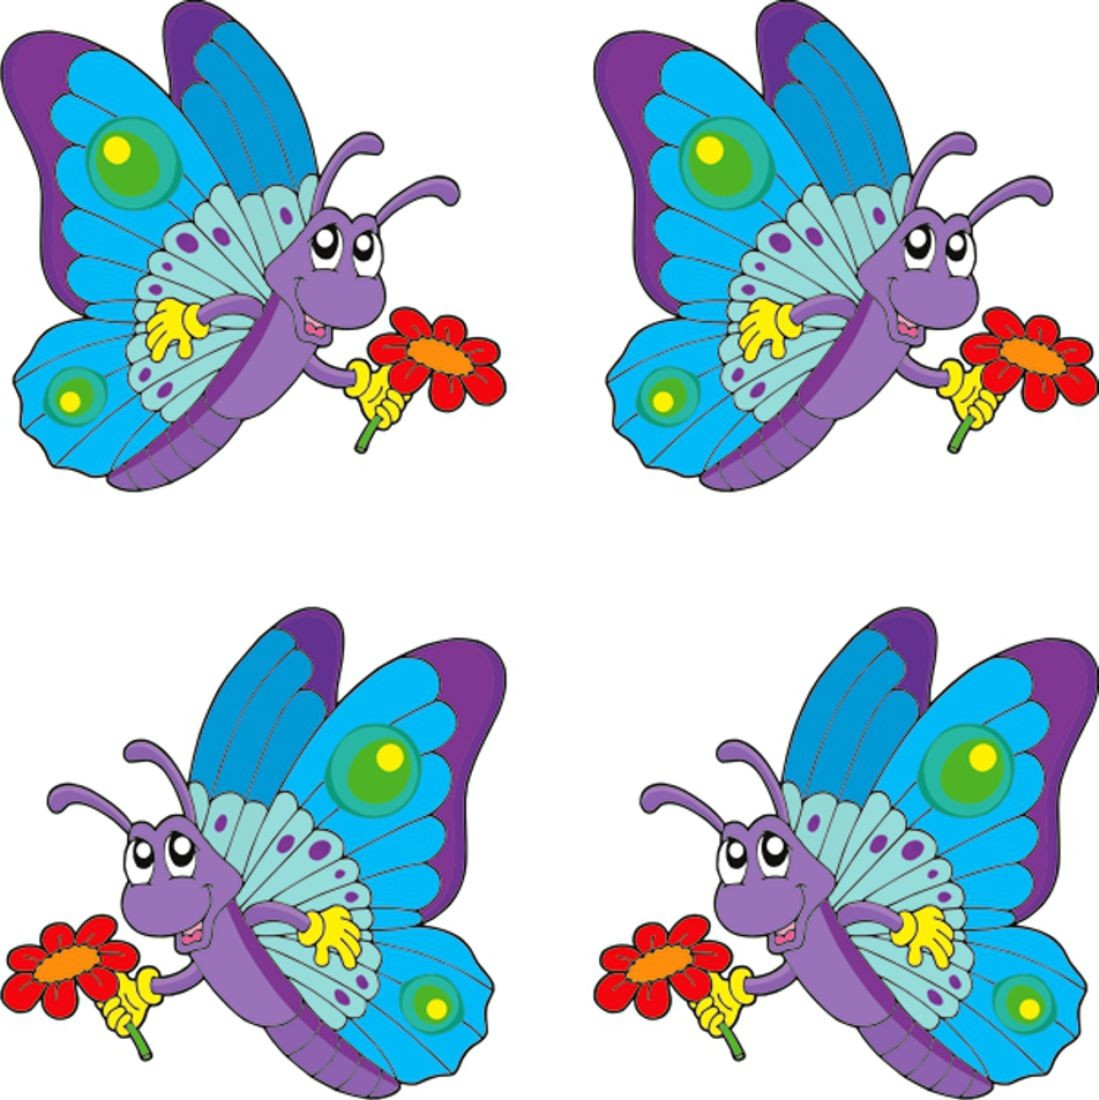 Sticker butterfly dimension 4 pieces each 35 x 35 mm